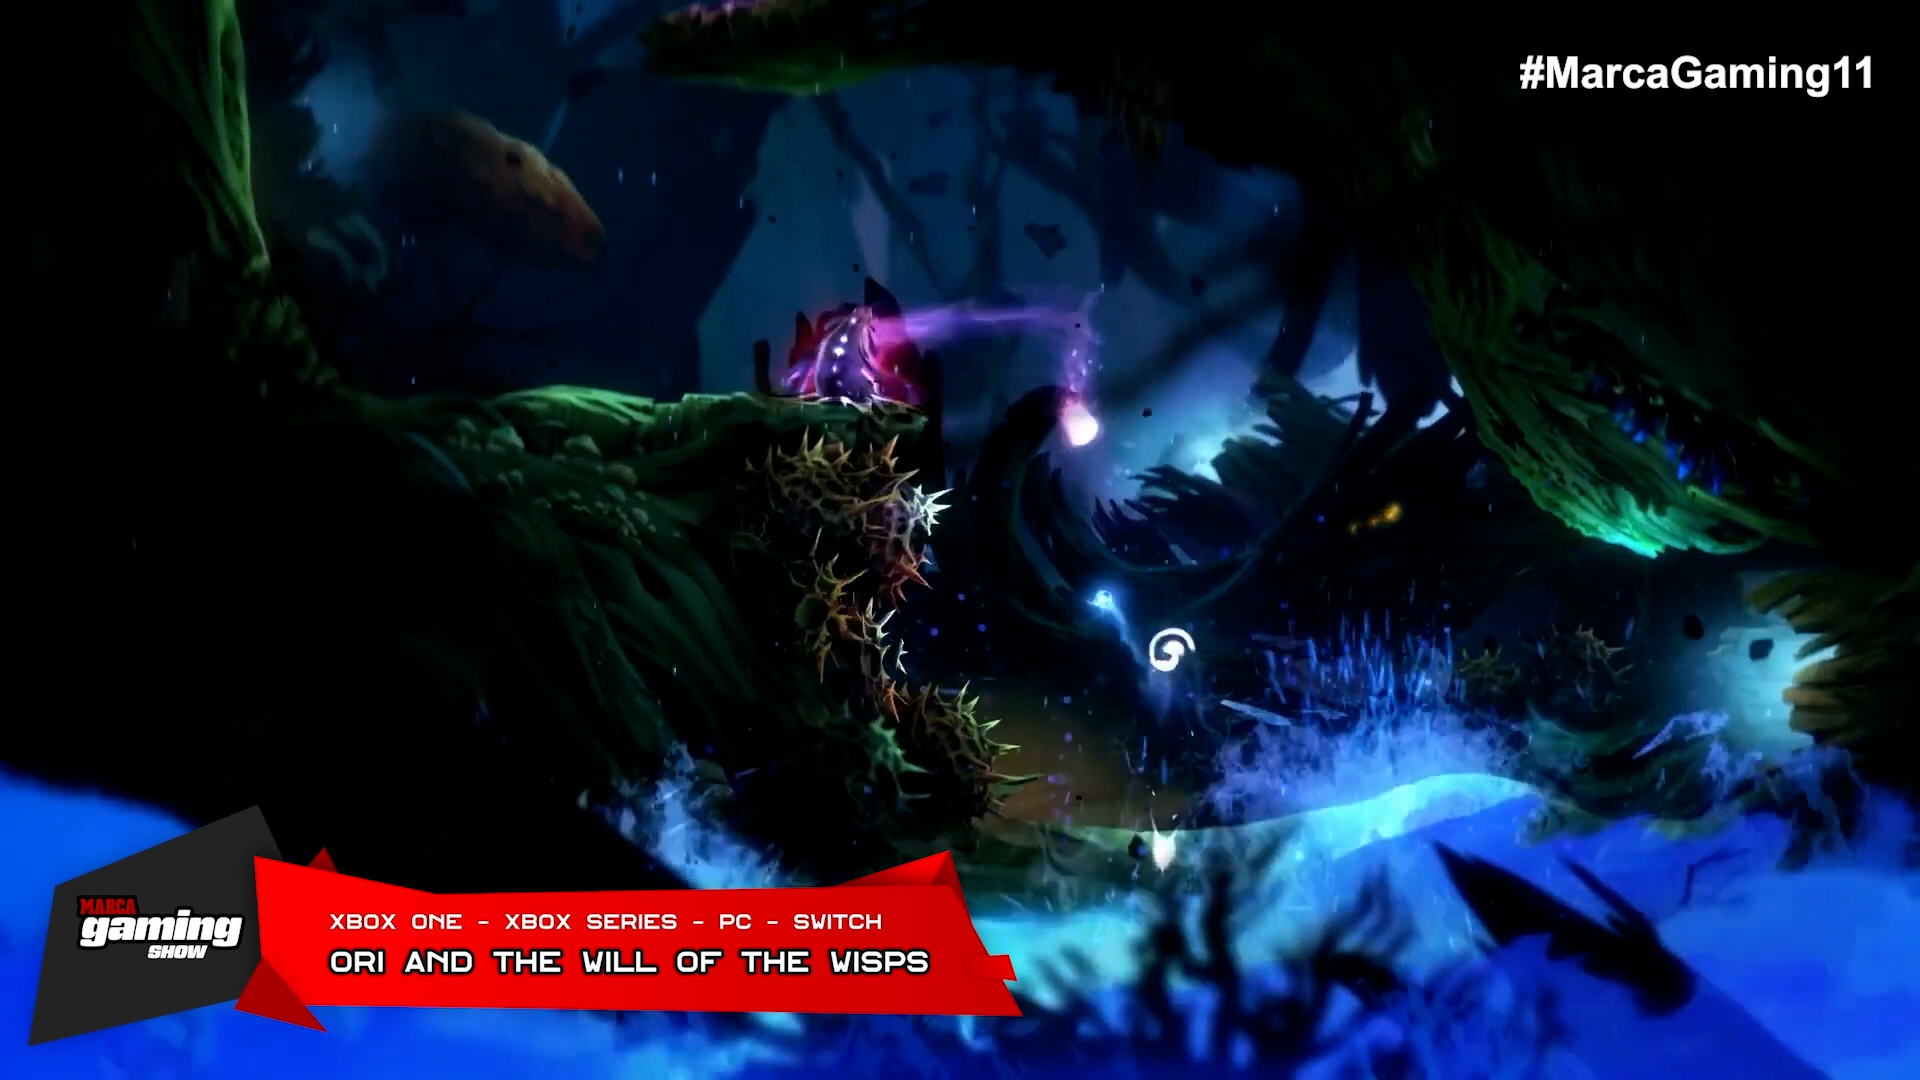 Ori and the will of the wisps ( SWITCH - XBOX ONE - XBOX SERIES - PC )